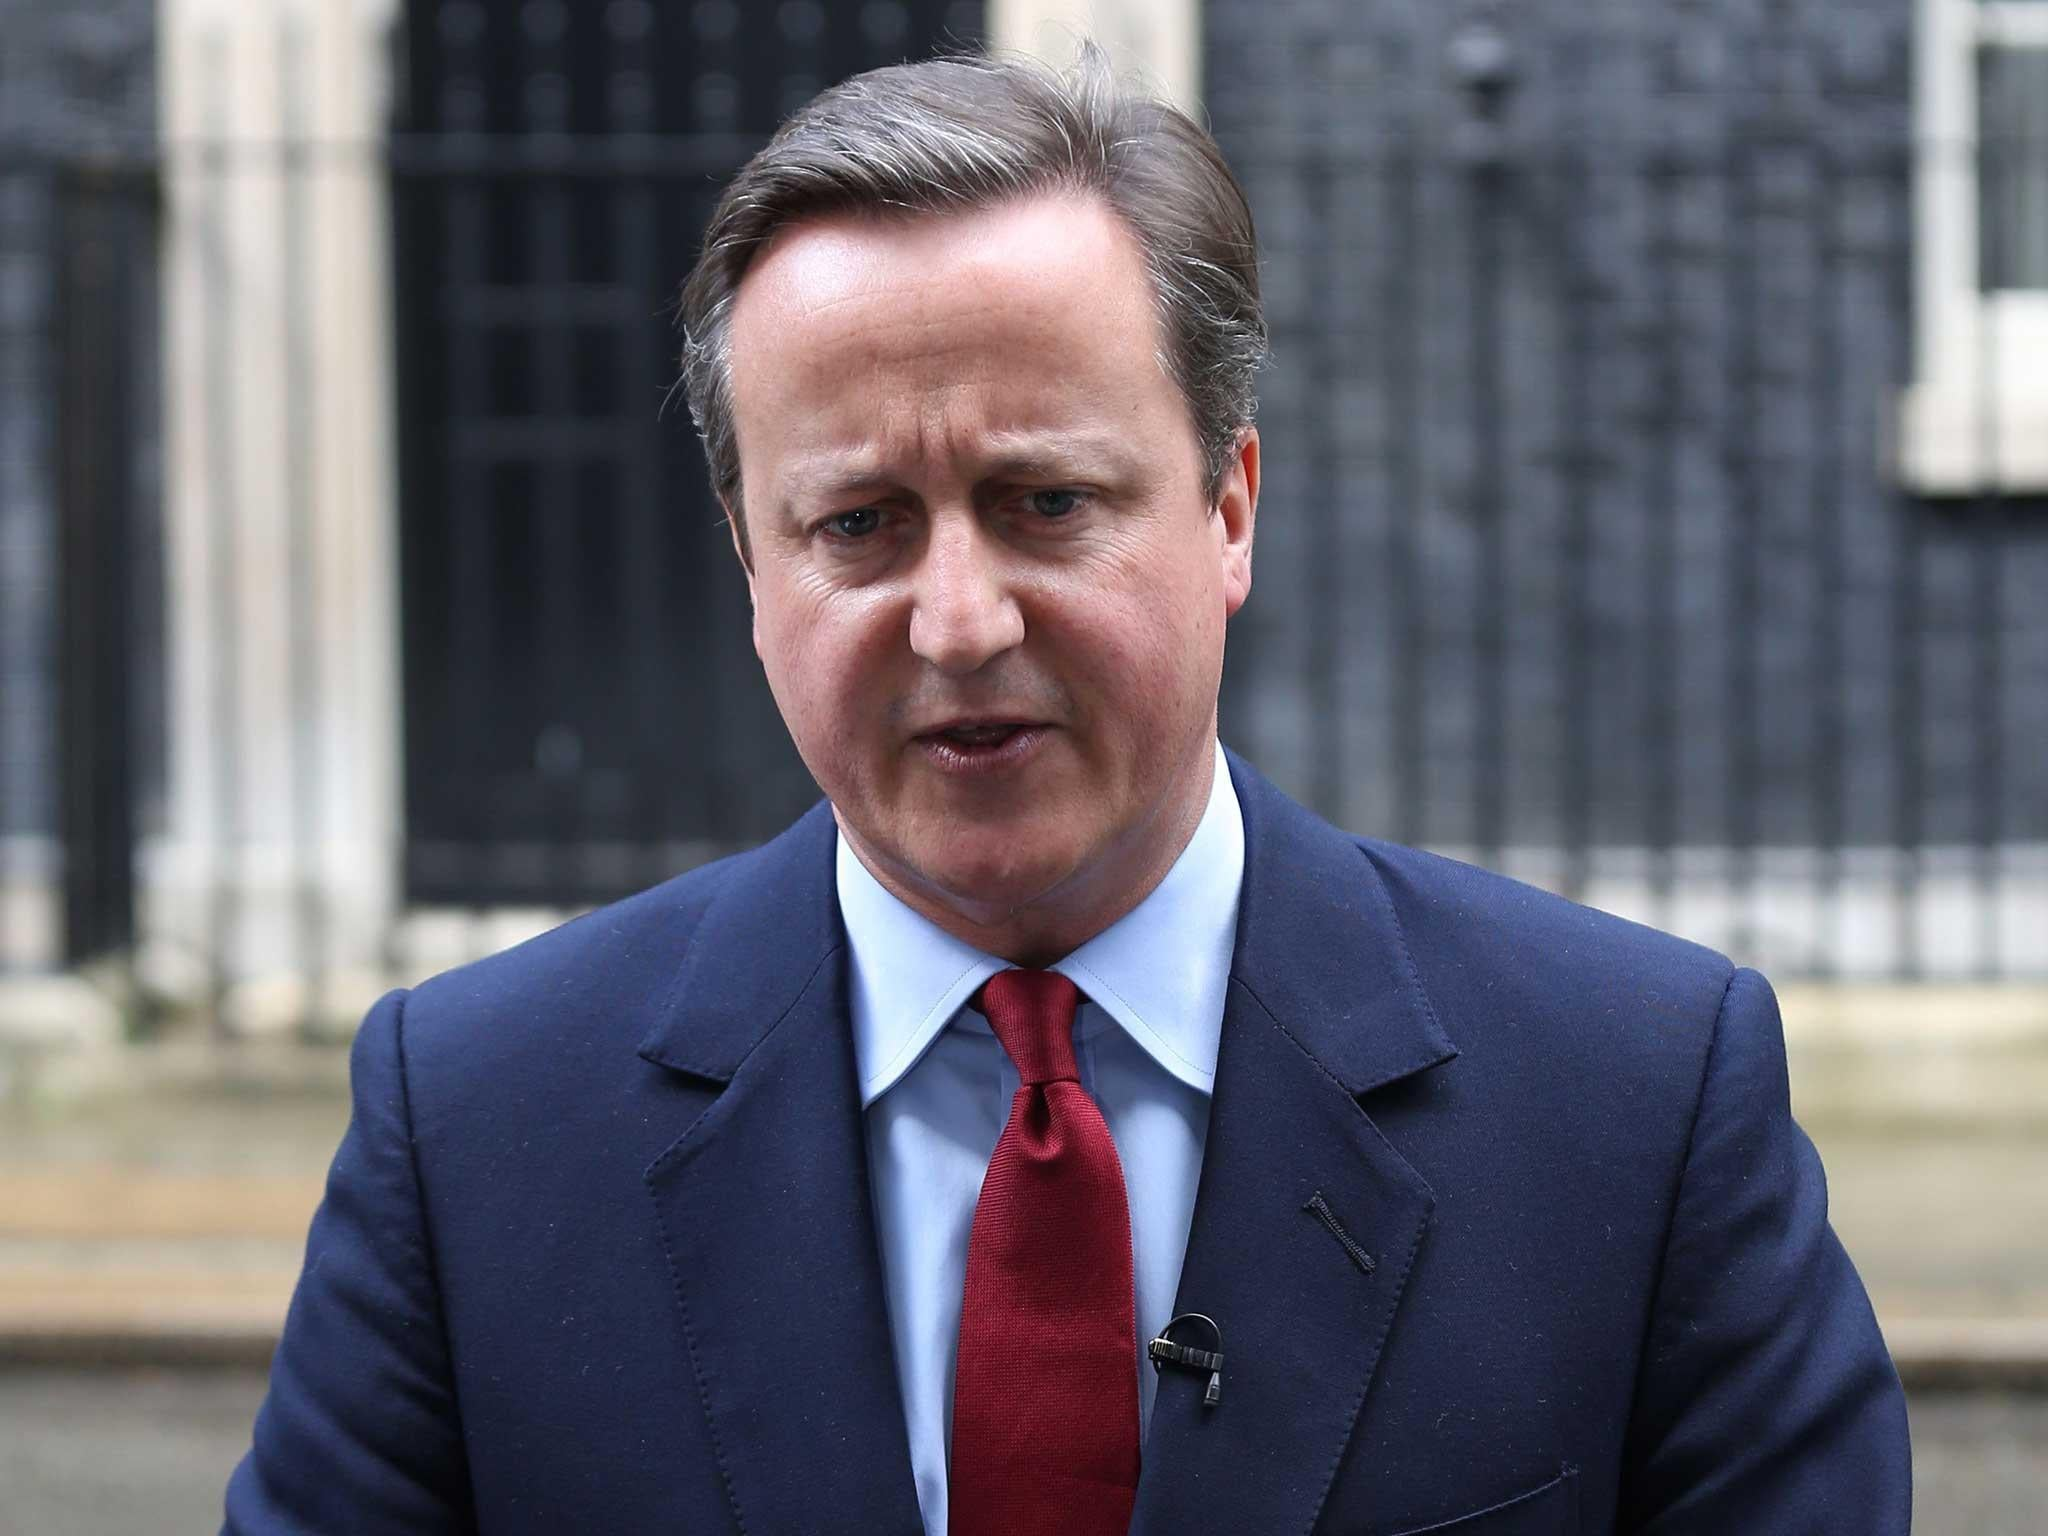 David Cameron - British Prime Minister: Biography, Family, Political Career 79